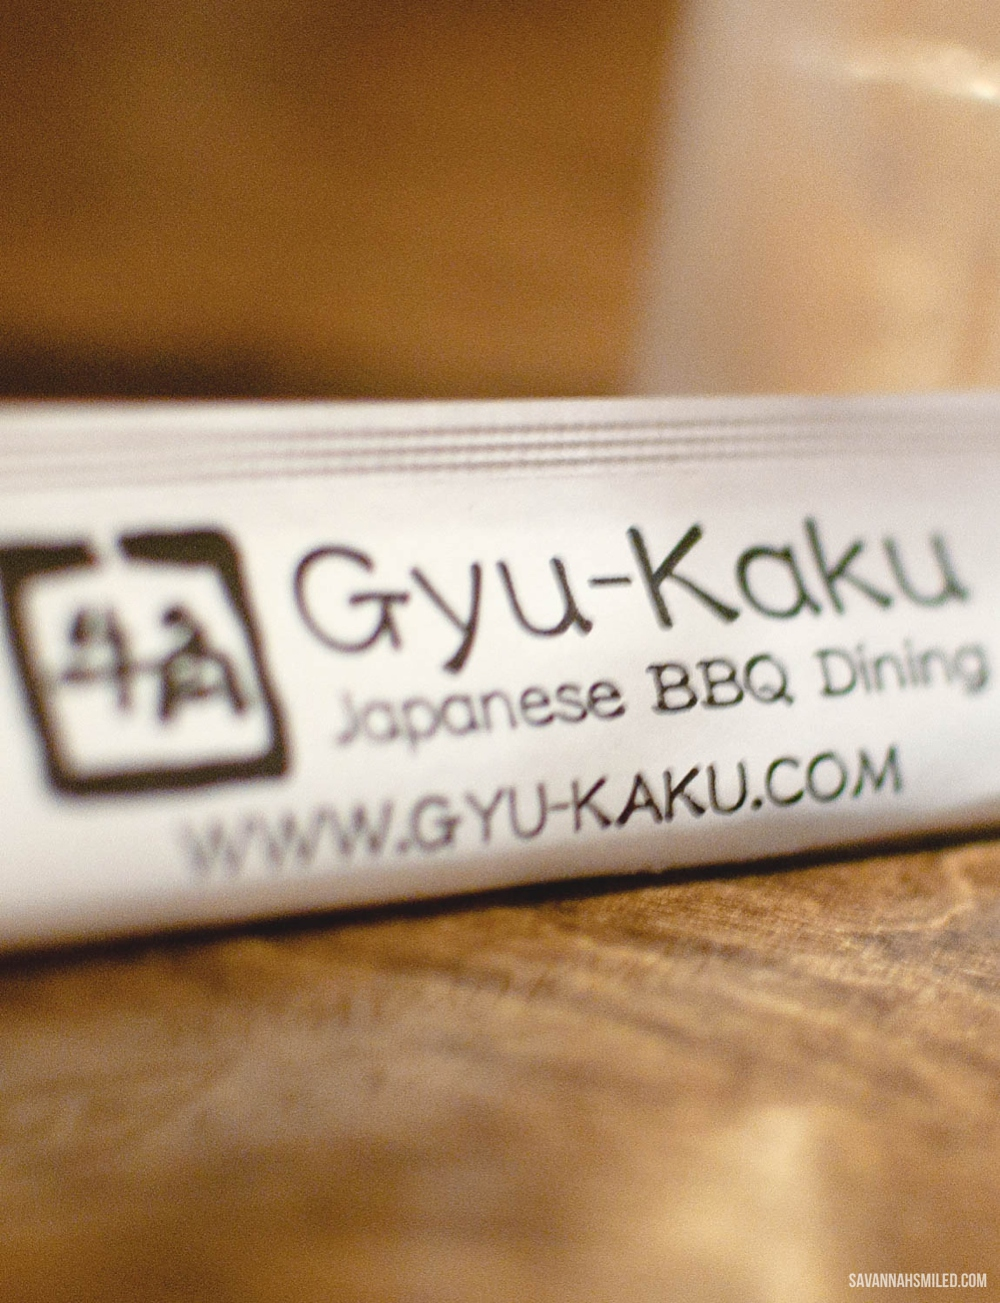 Gyu-Kaku-japanese-bbq-hawaii-3.jpg